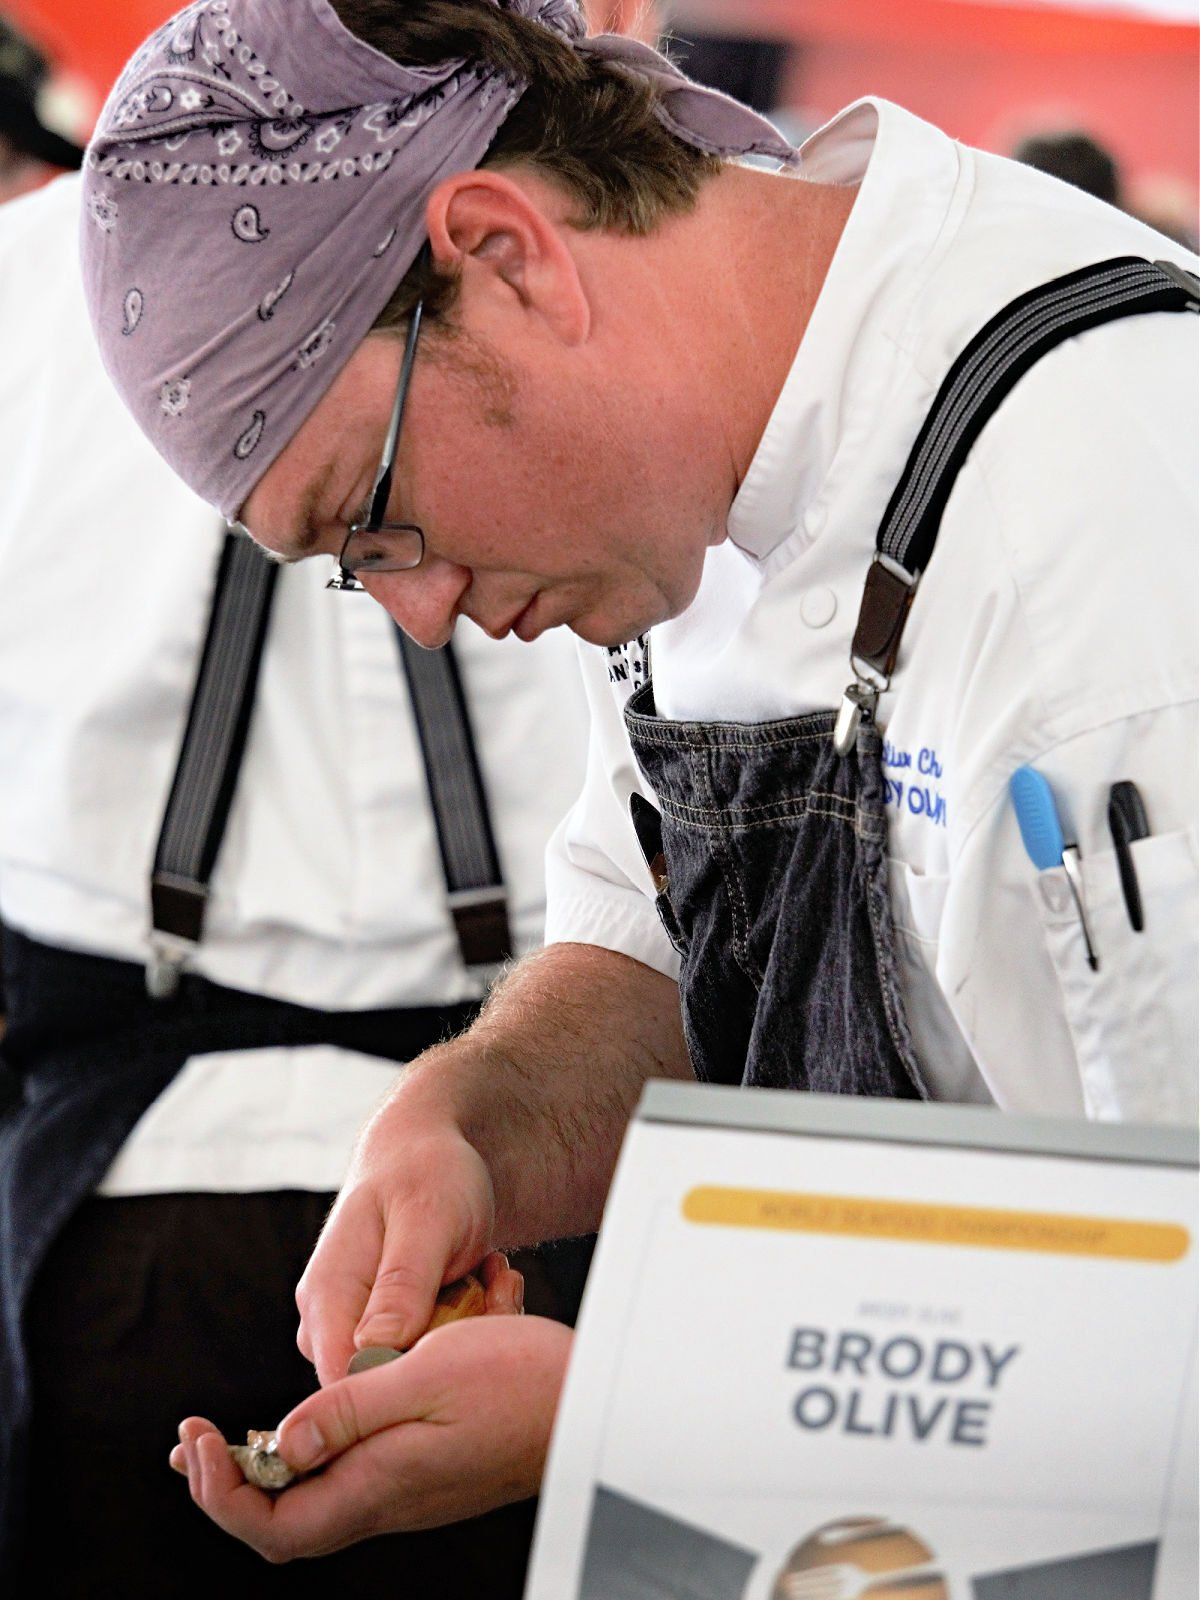 Chef Brody Olive shucking oysters at the World Food Championships.